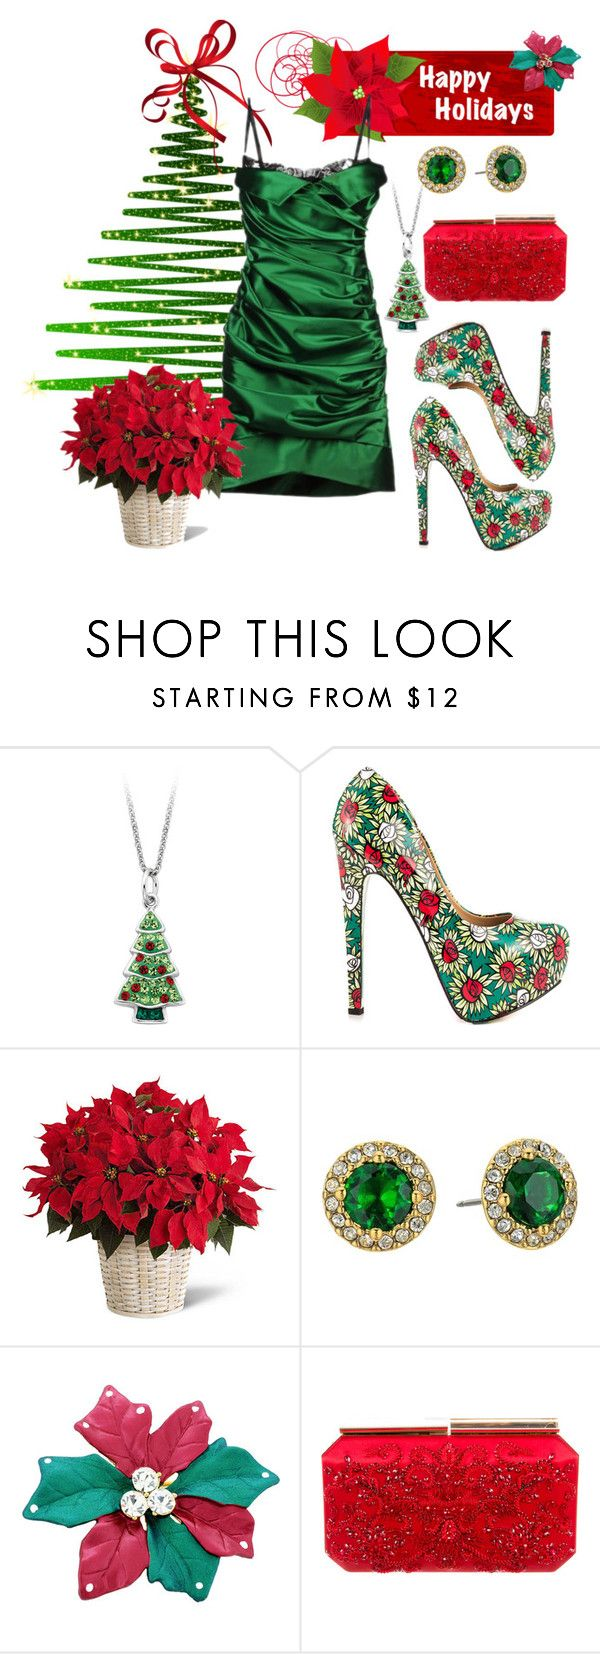 """Happy Holidays"" by dogzprinted ❤ liked on Polyvore featuring TaylorSays, Lauren Ralph Lauren, Oscar de la Renta, GreenDress, greenandred and ChristmasDress"